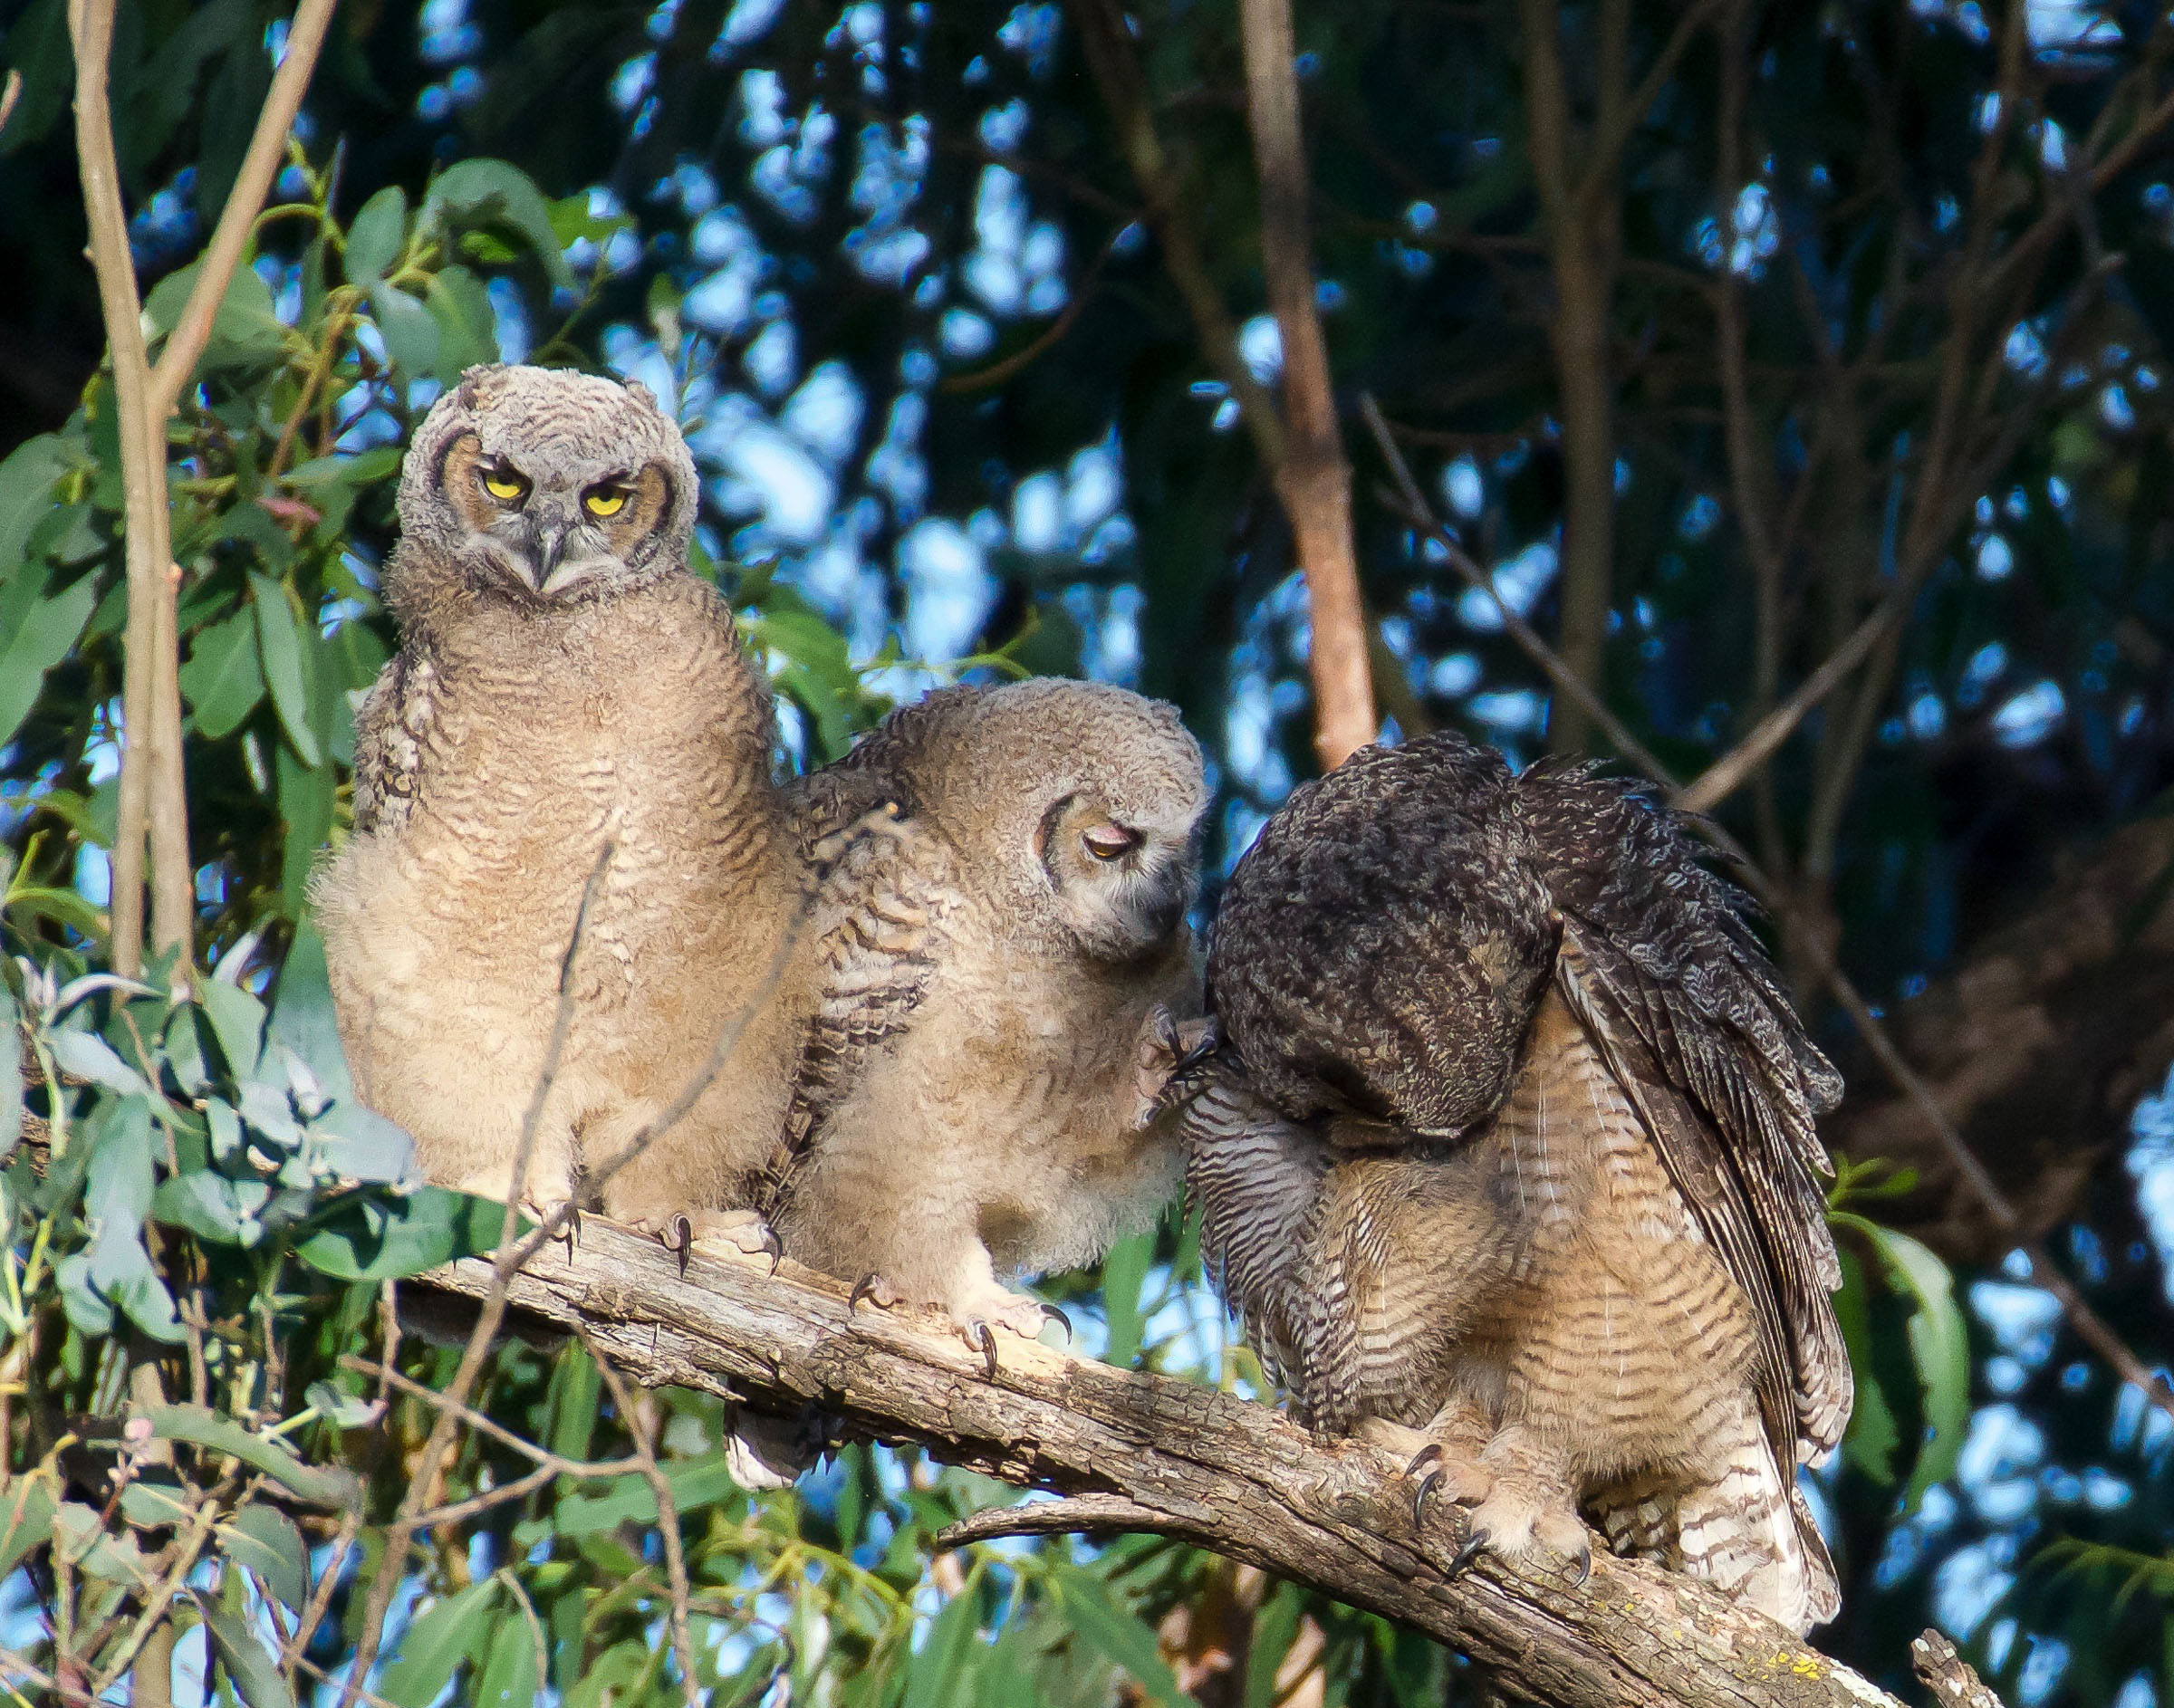 mother-great-horned-owl-grooming-owlets-2.jpg